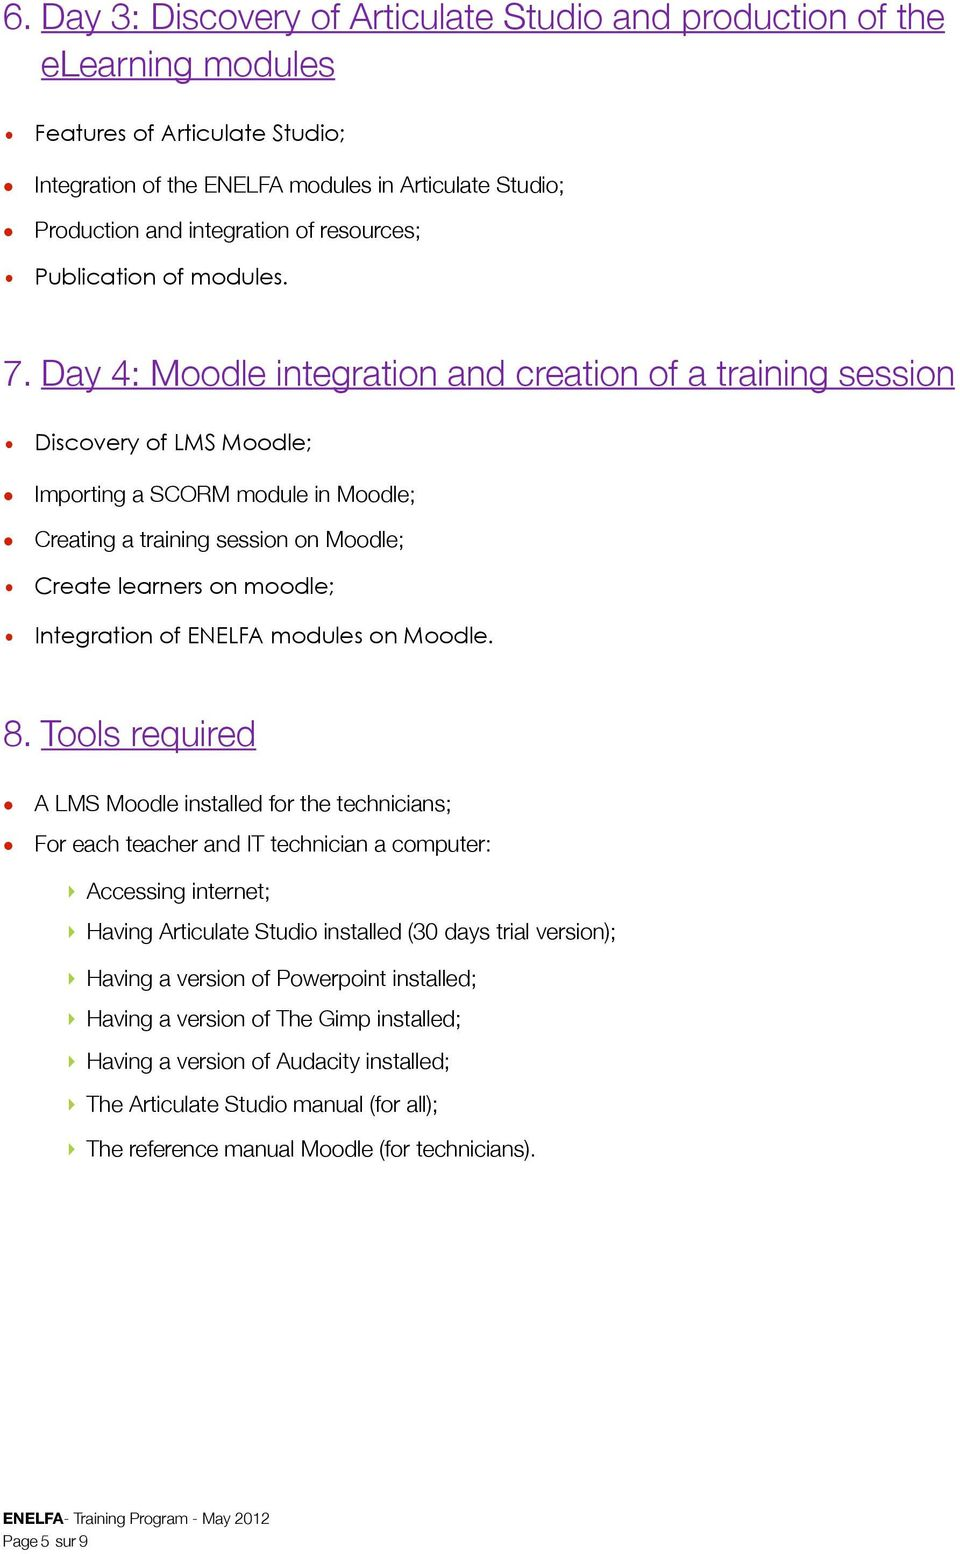 Day 4: Moodle integration and creation of a training session Discovery of LMS Moodle; Importing a SCORM module in Moodle; Creating a training session on Moodle; Create learners on moodle; Integration